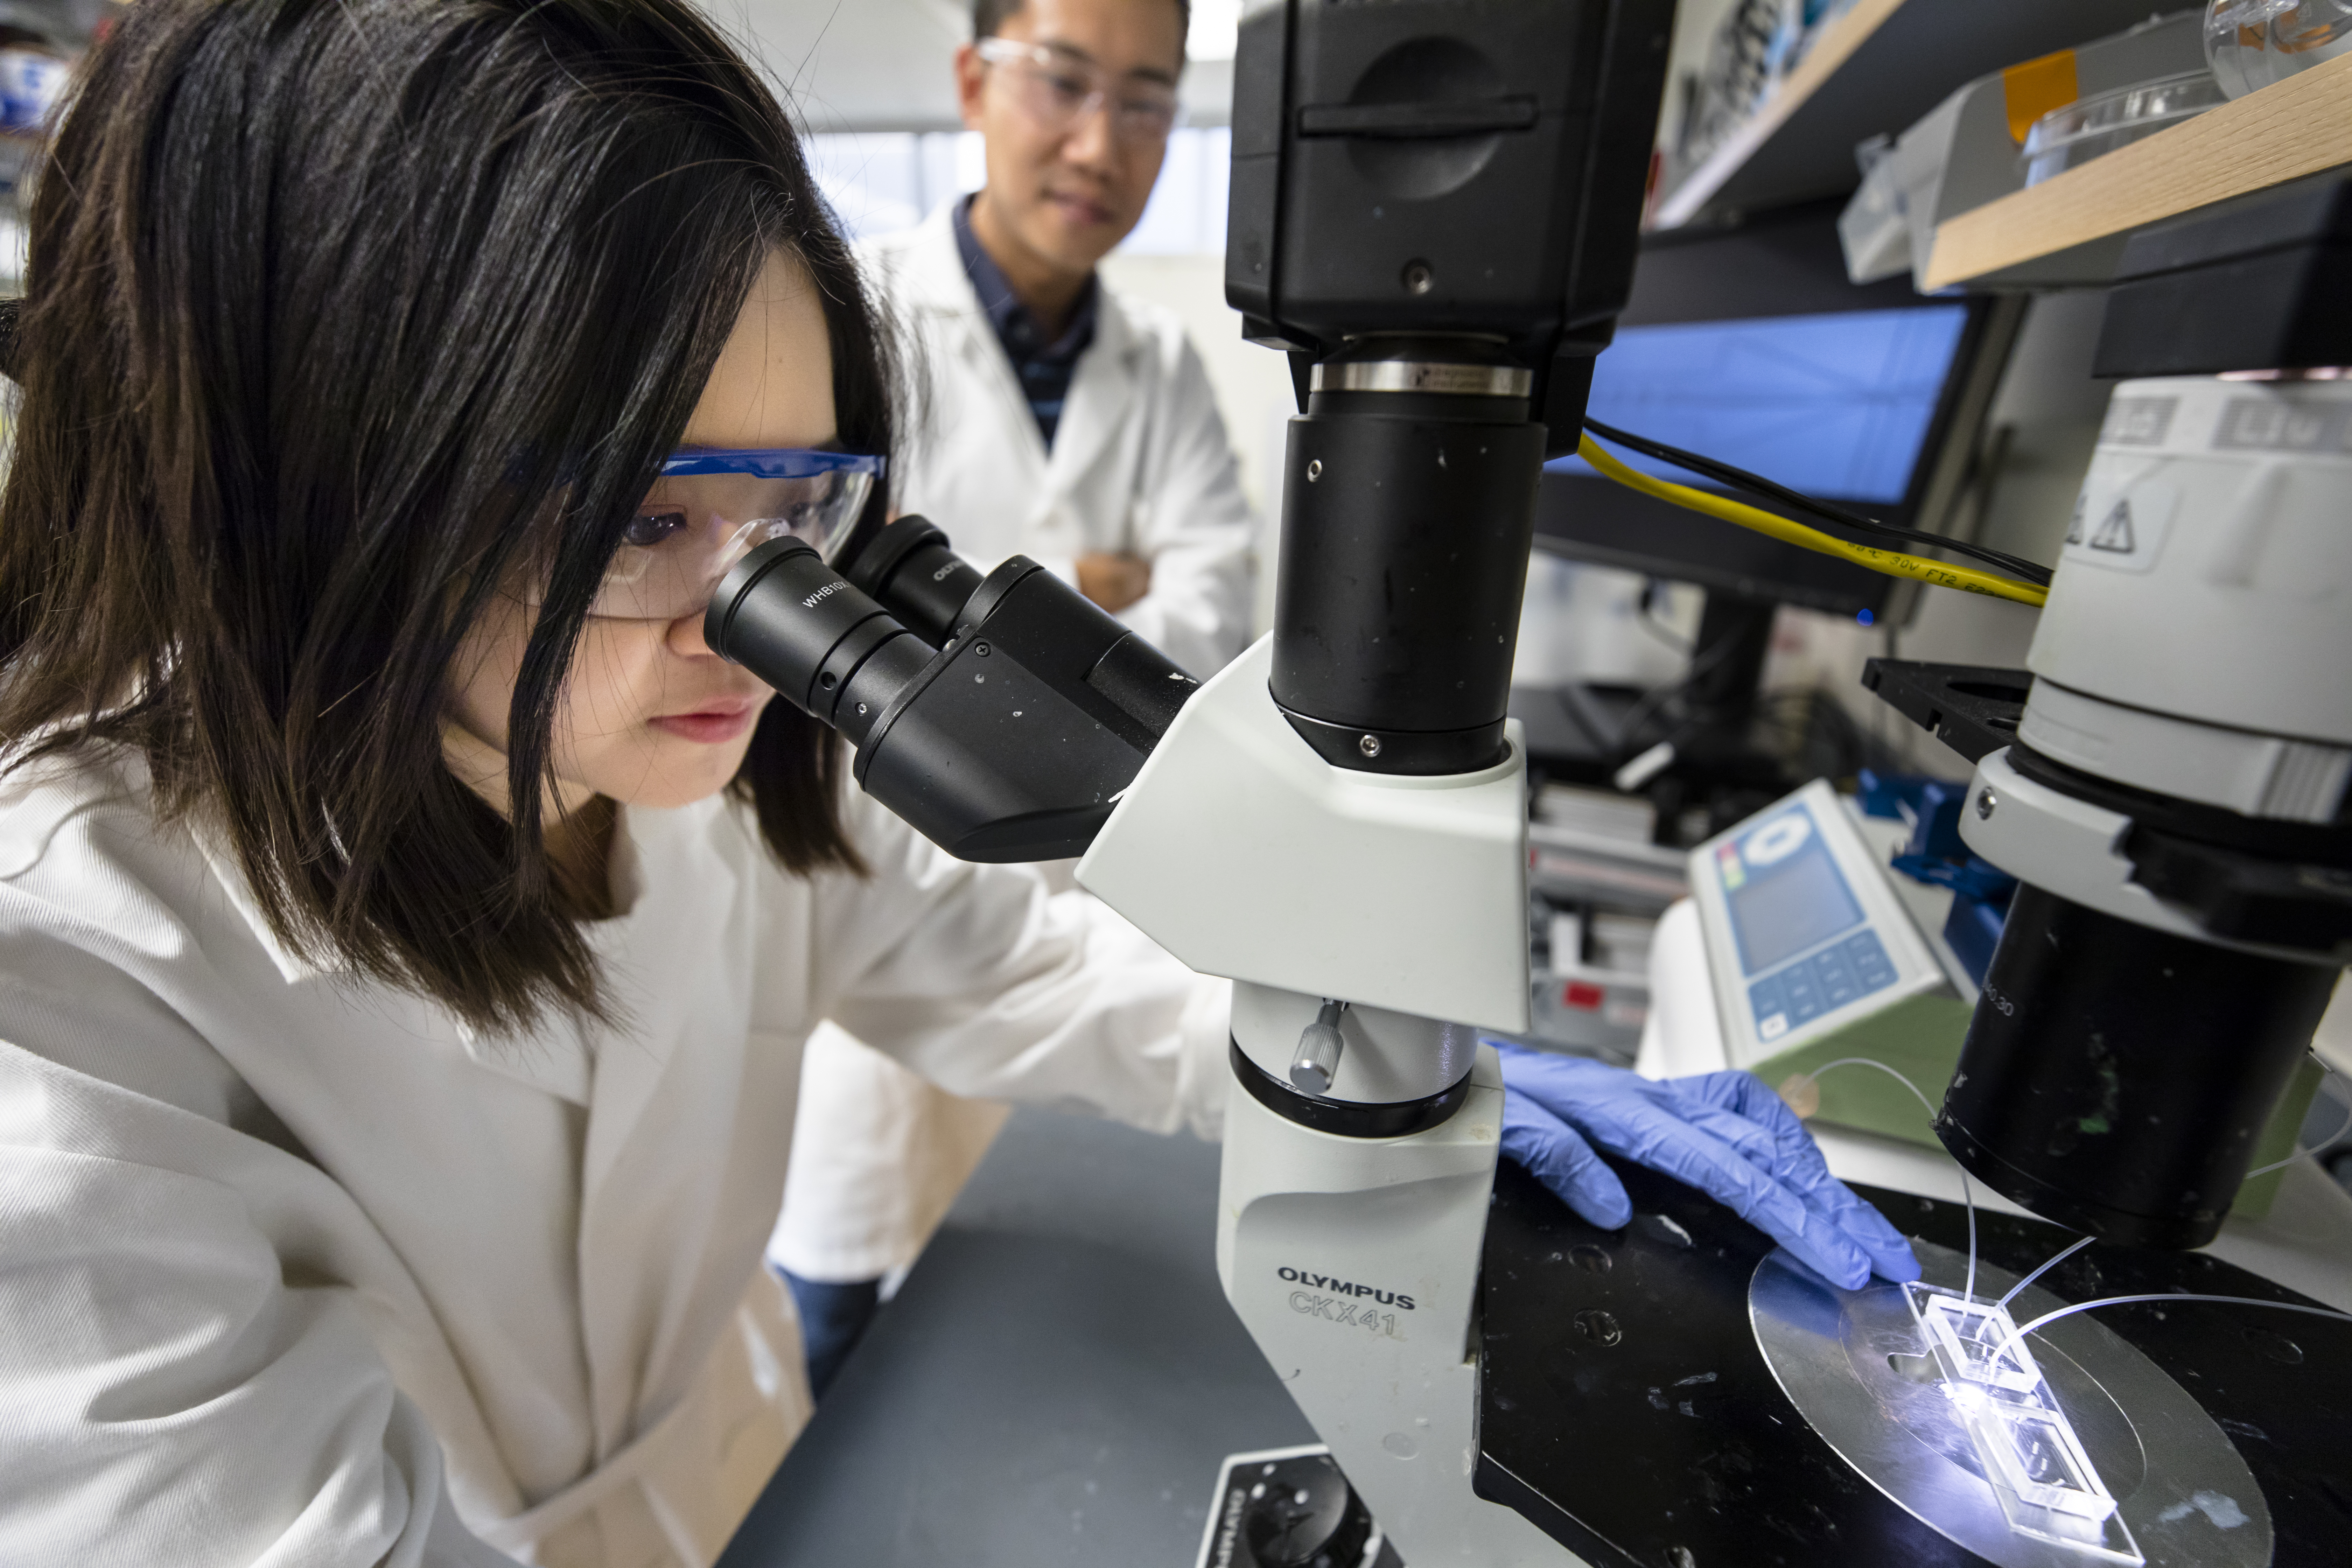 Female scientist looks into a microscope